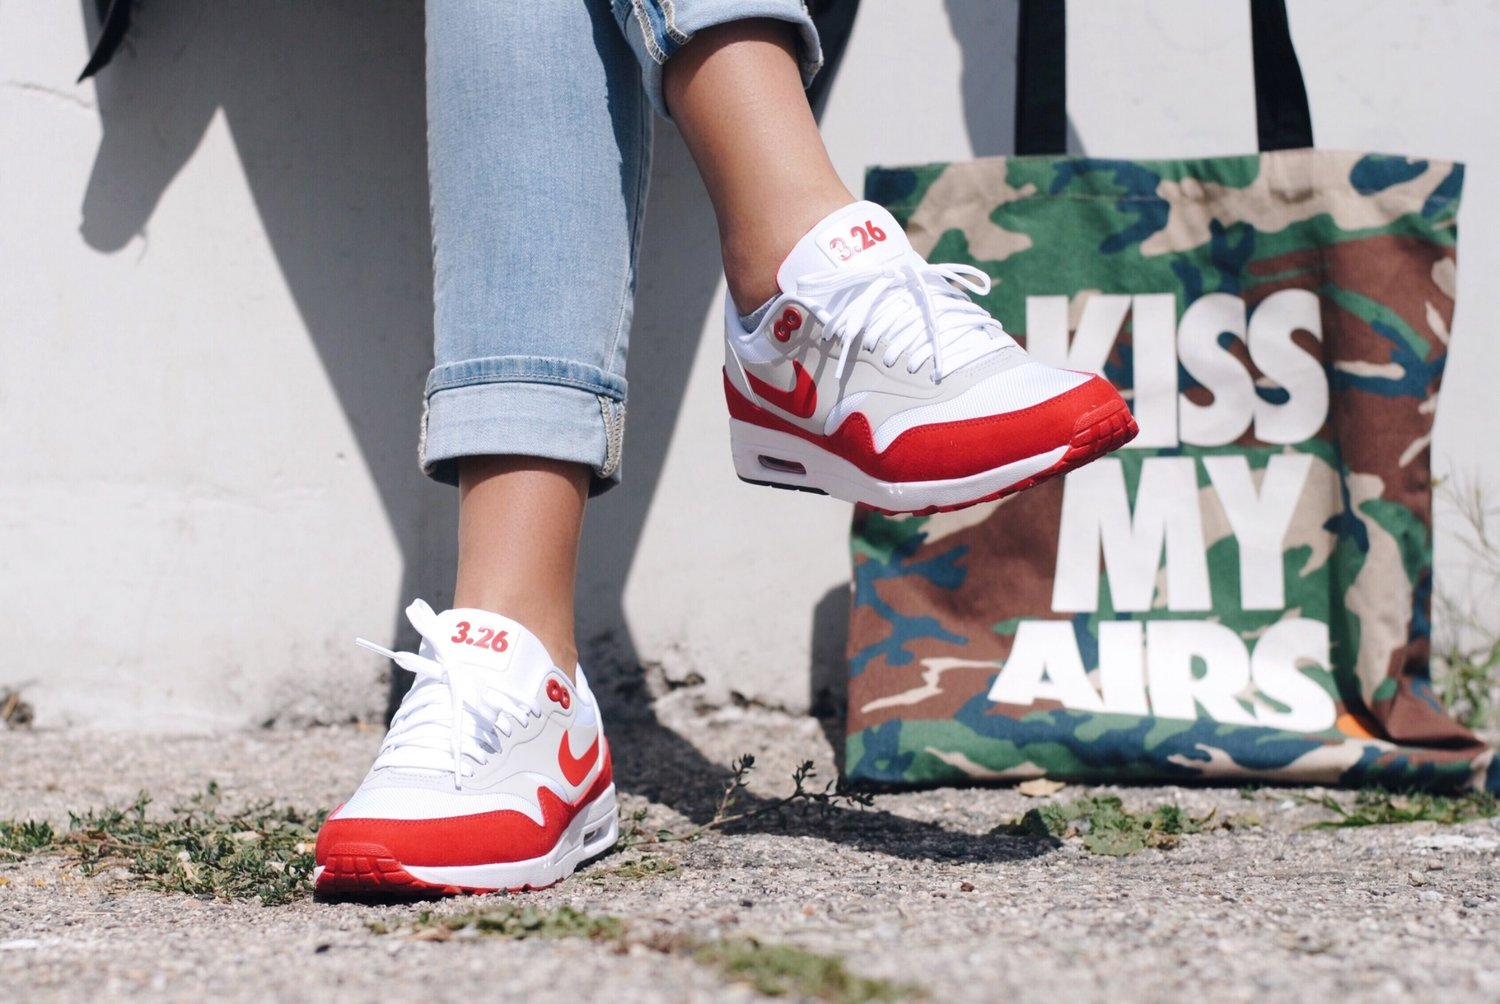 bbbec303576f The Revolution Never Ends - Air Max Day '17 — dianakmir